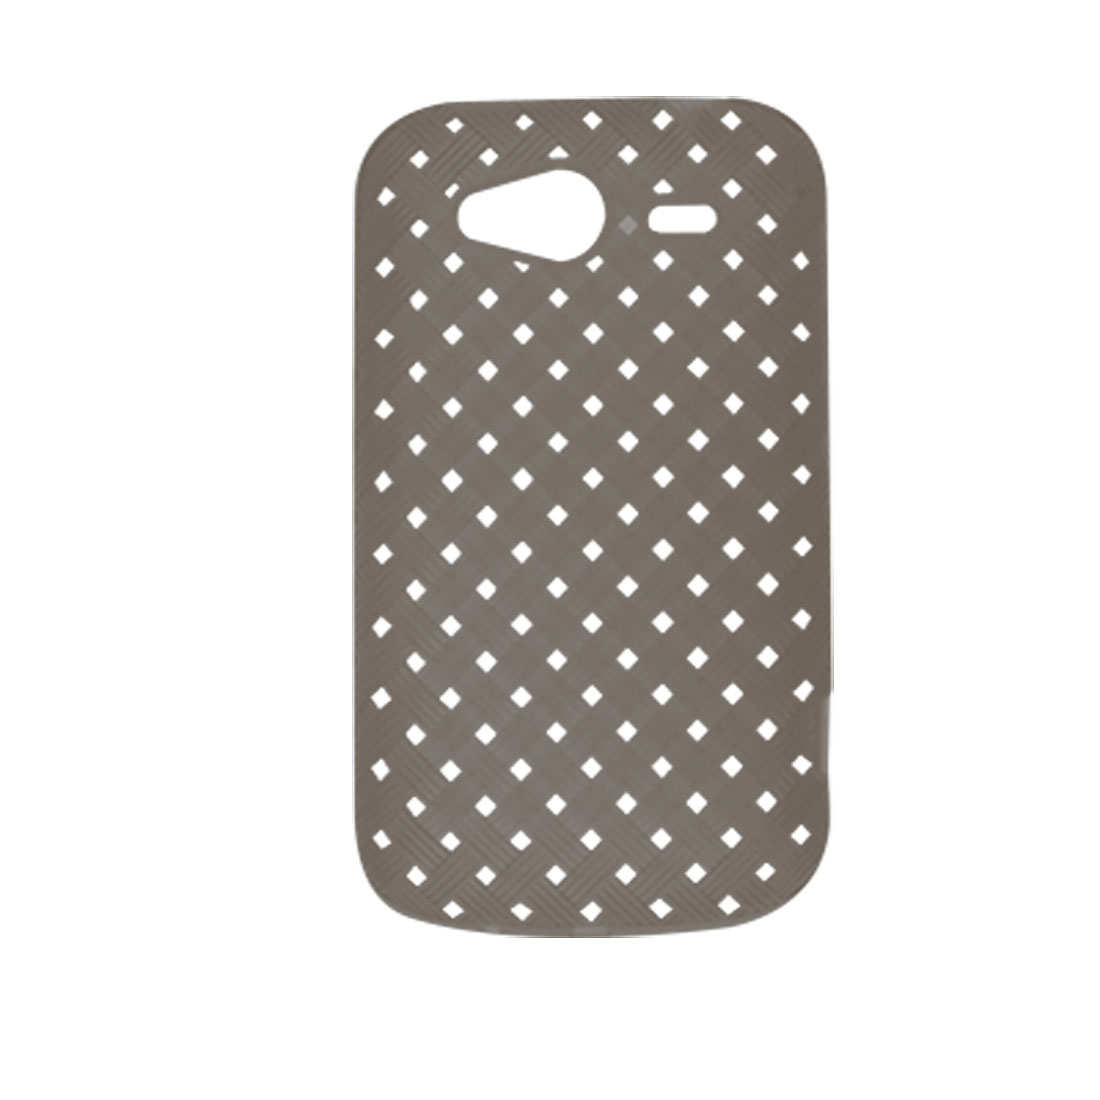 Dark Gray Mini Holes Woven Pattern Soft Plastic Shell for HTC Wildfire S G13 G8s